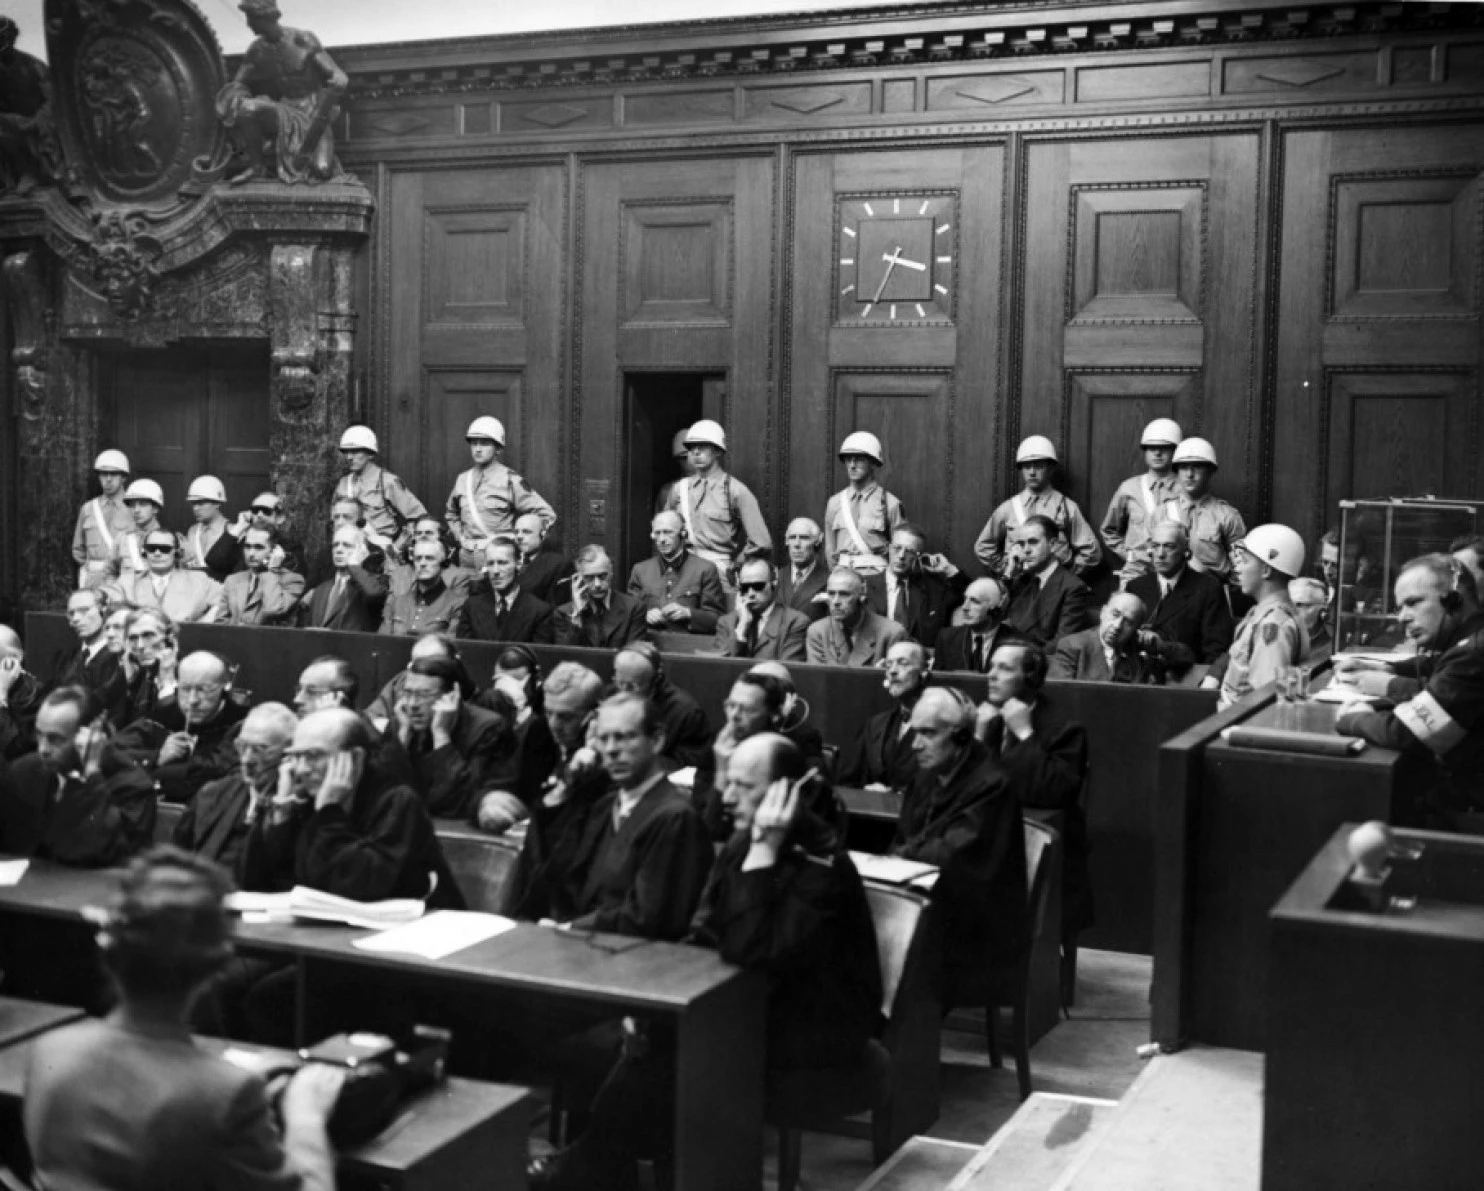 nuremberg trials on emaze